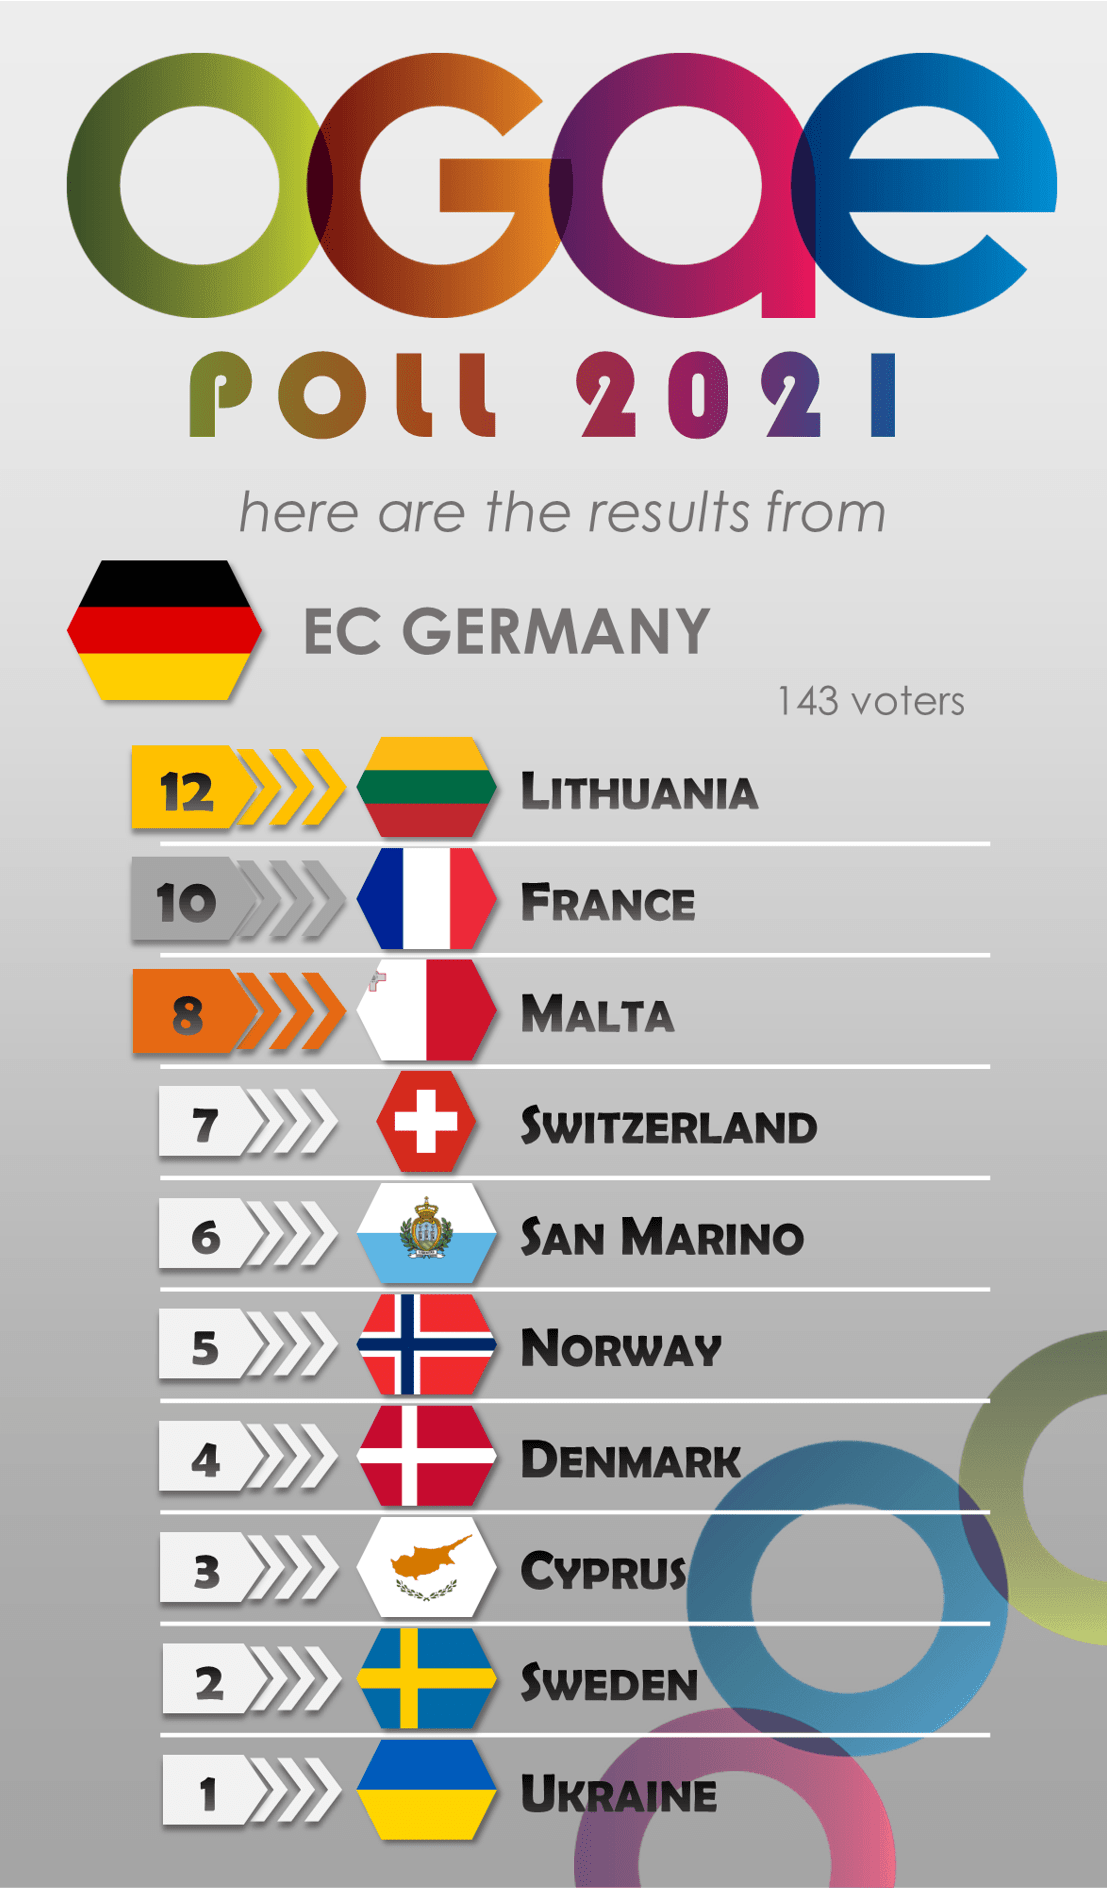 20-EC-Germany.png